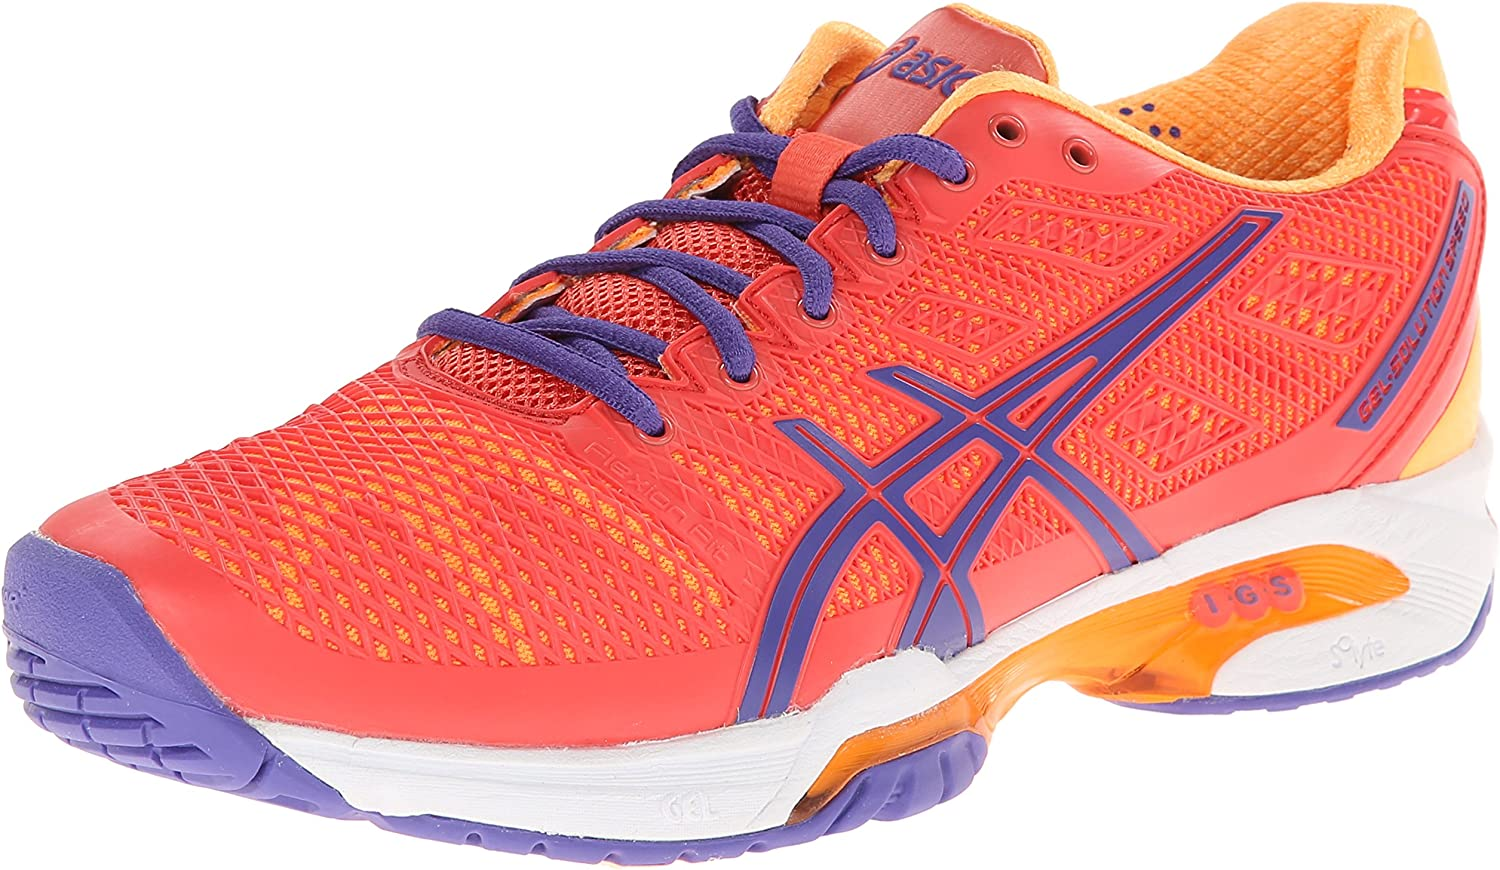 hígado Astronave Diligencia  Amazon.com | ASICS Men's Gel-Solution Speed 2 Clay-W, Hot  Coral/Lavender/Nectarine, 10.5 | Tennis & Racquet Sports